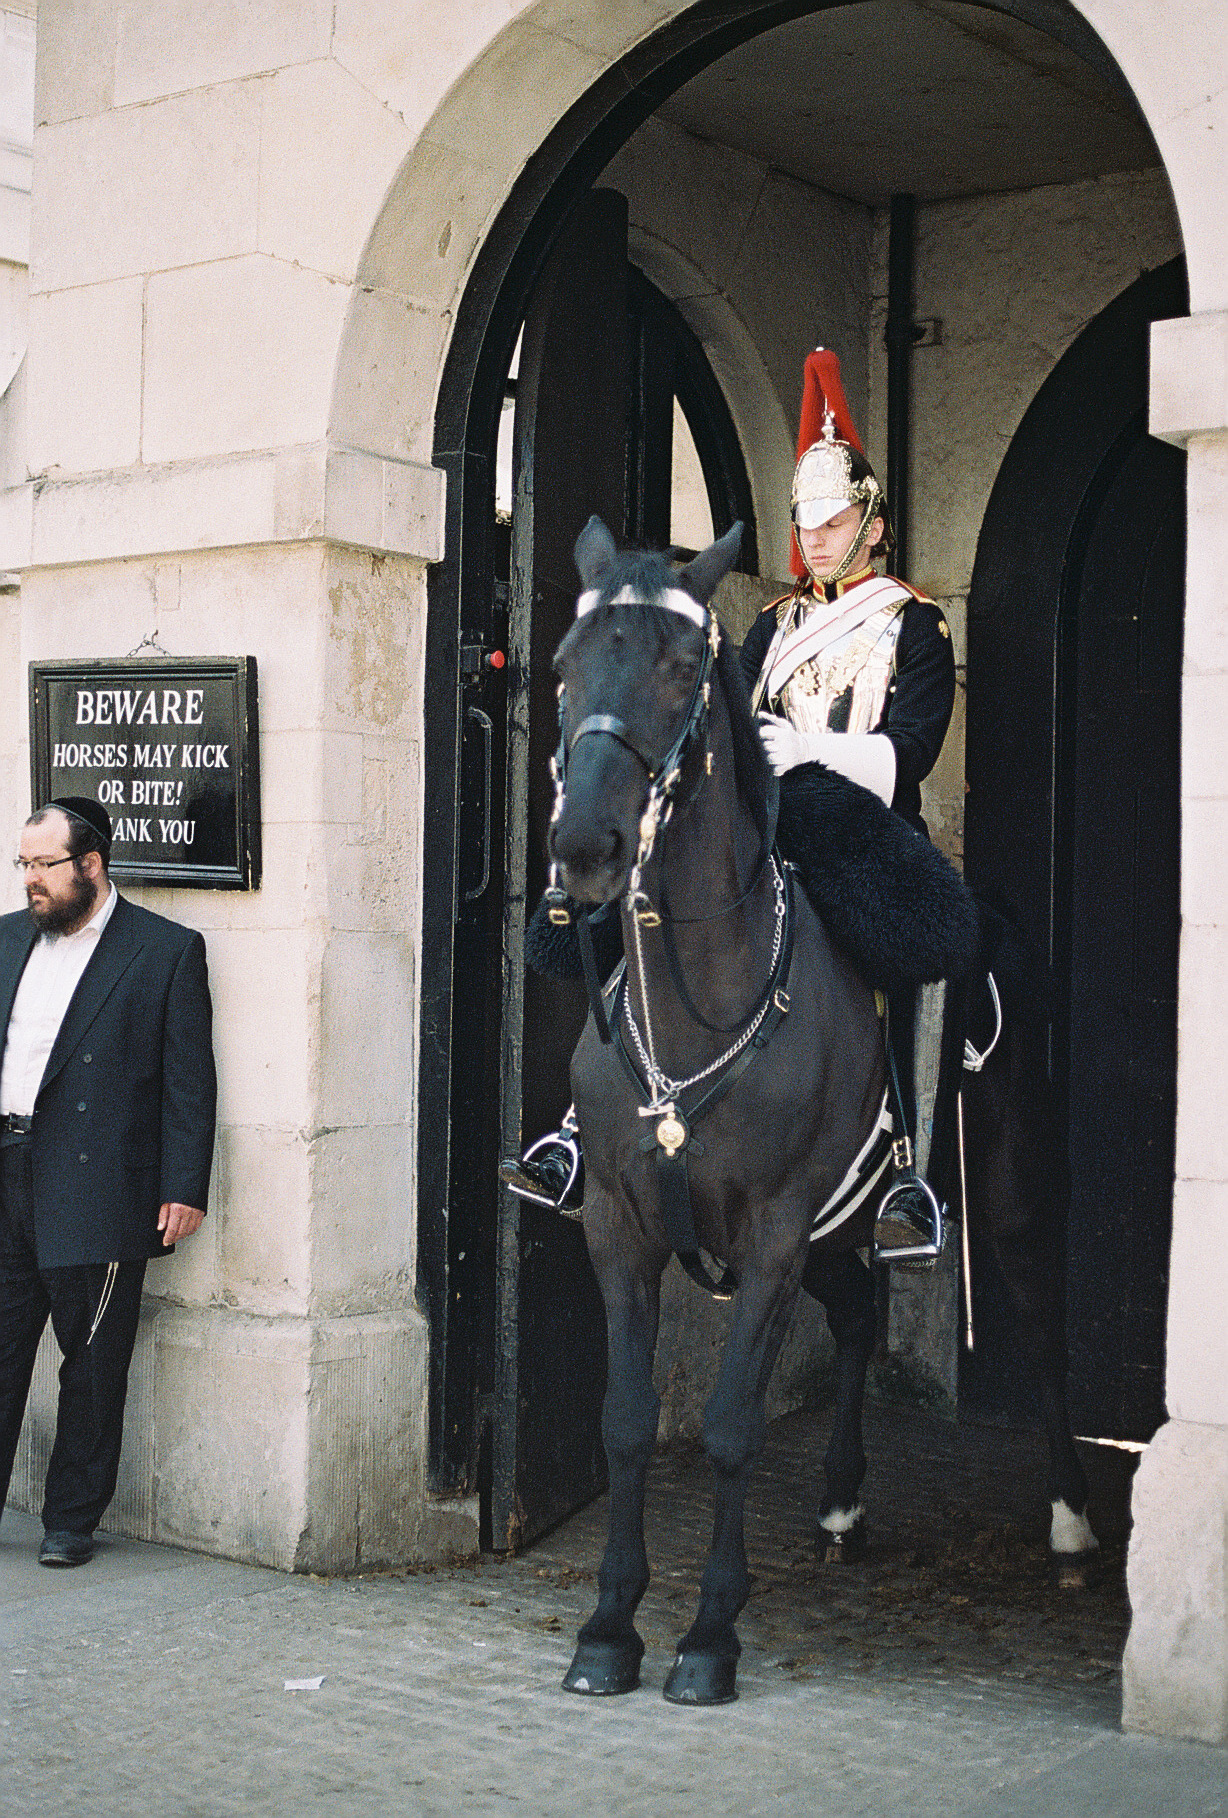 palace-guard-on-horse-london-uk-european-honeymoon